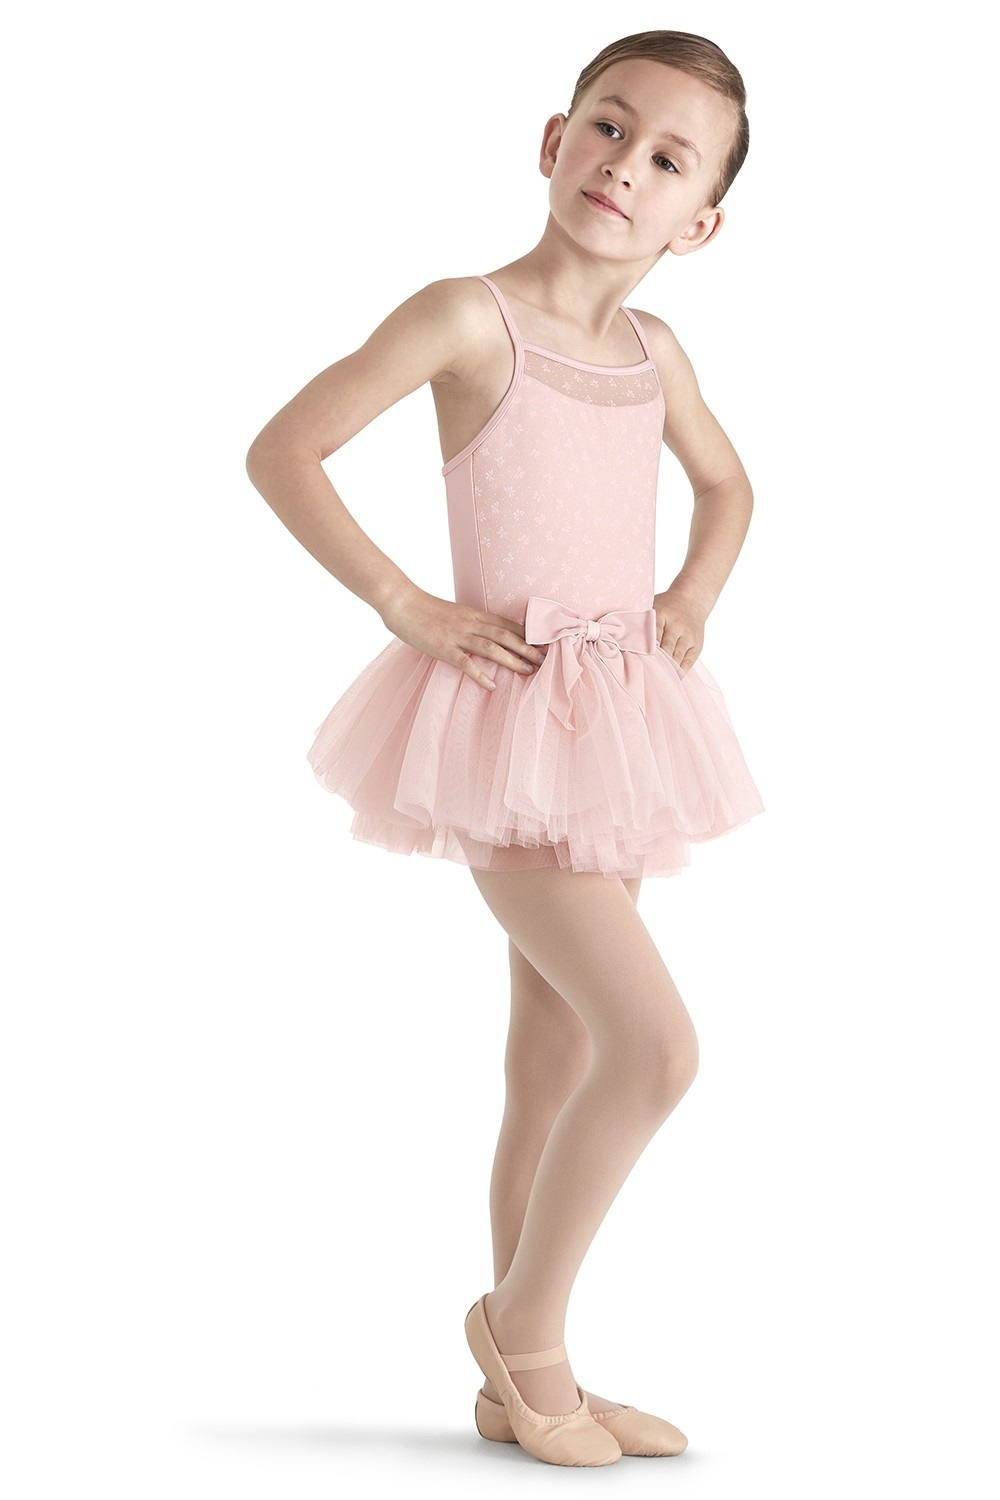 Flock Mesh Camisole Tutu Children's Dance Leotards